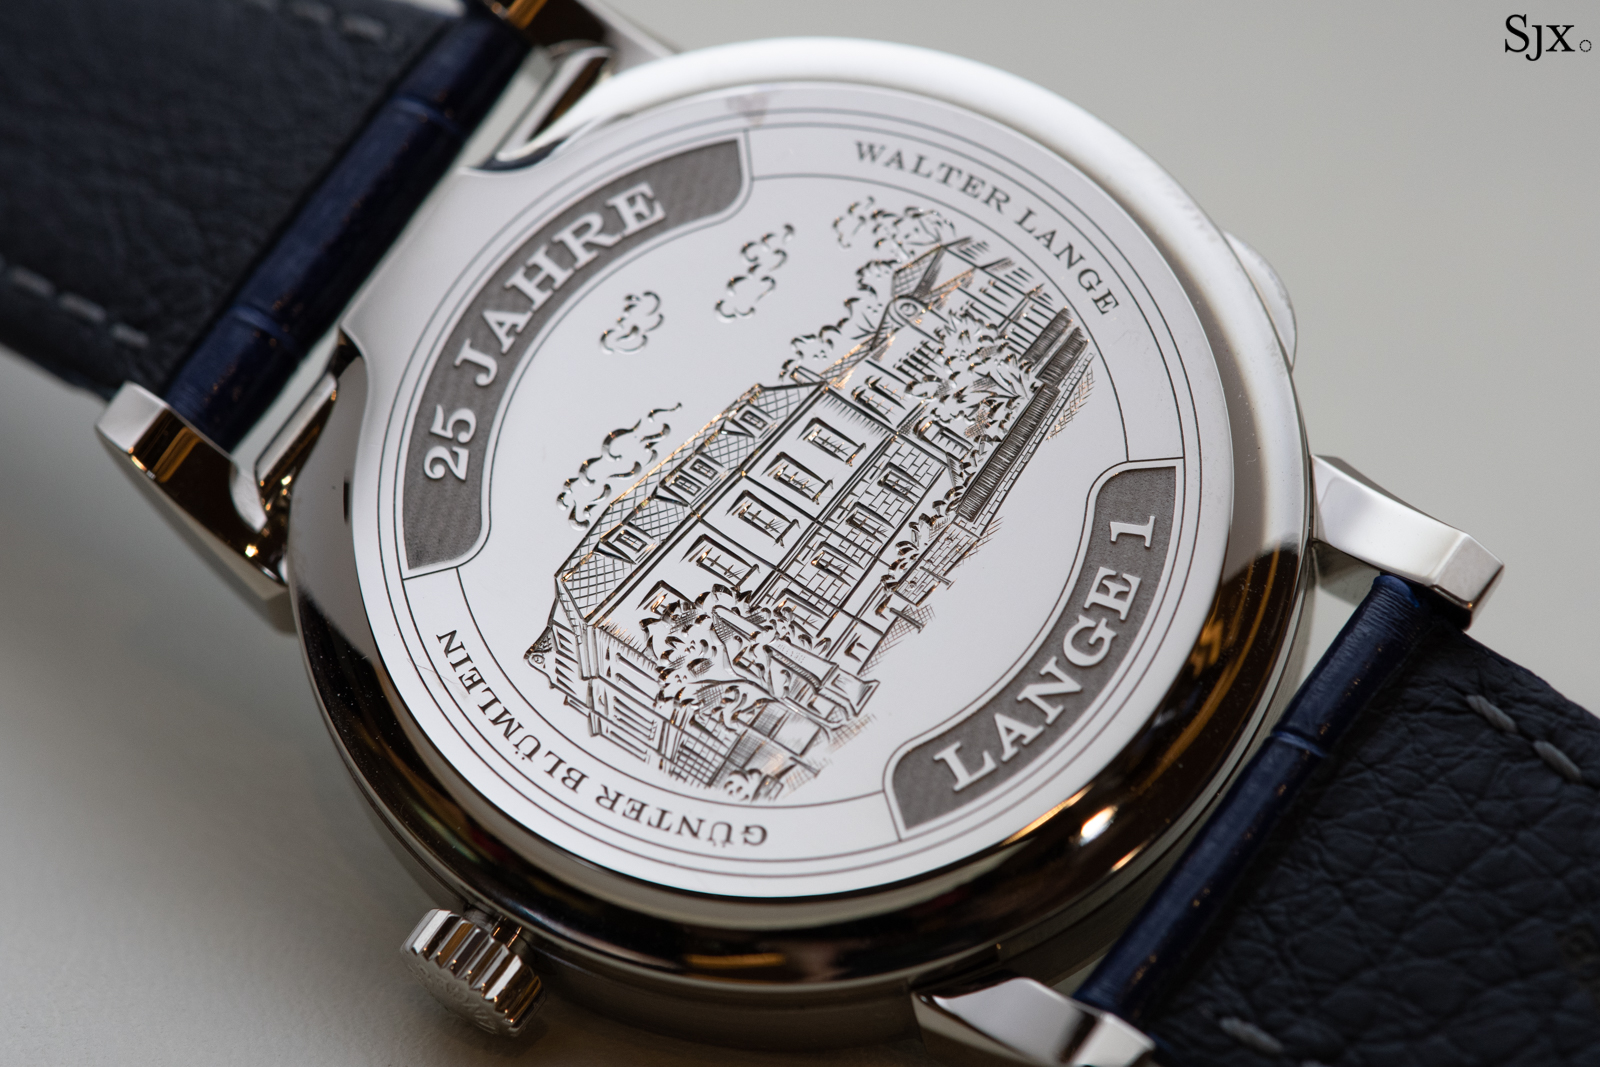 Lange 1 25th Anniversary case back 2